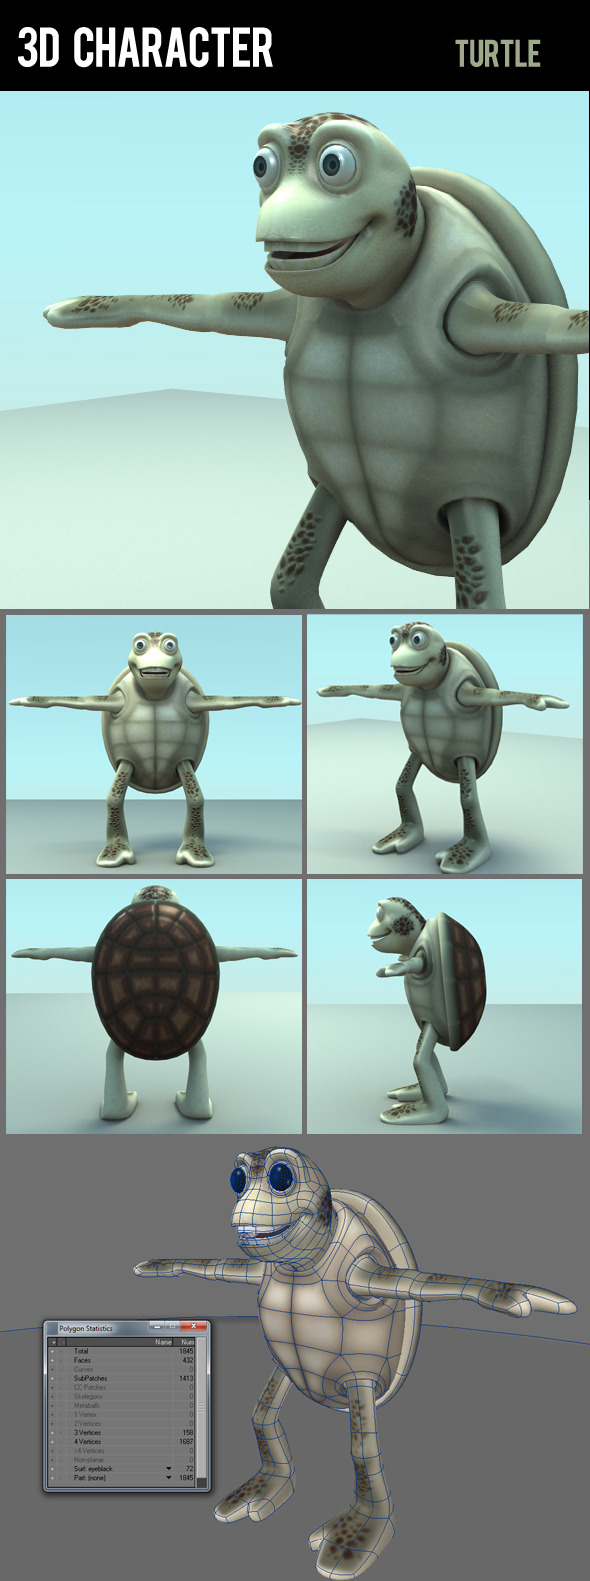 3D character turtle